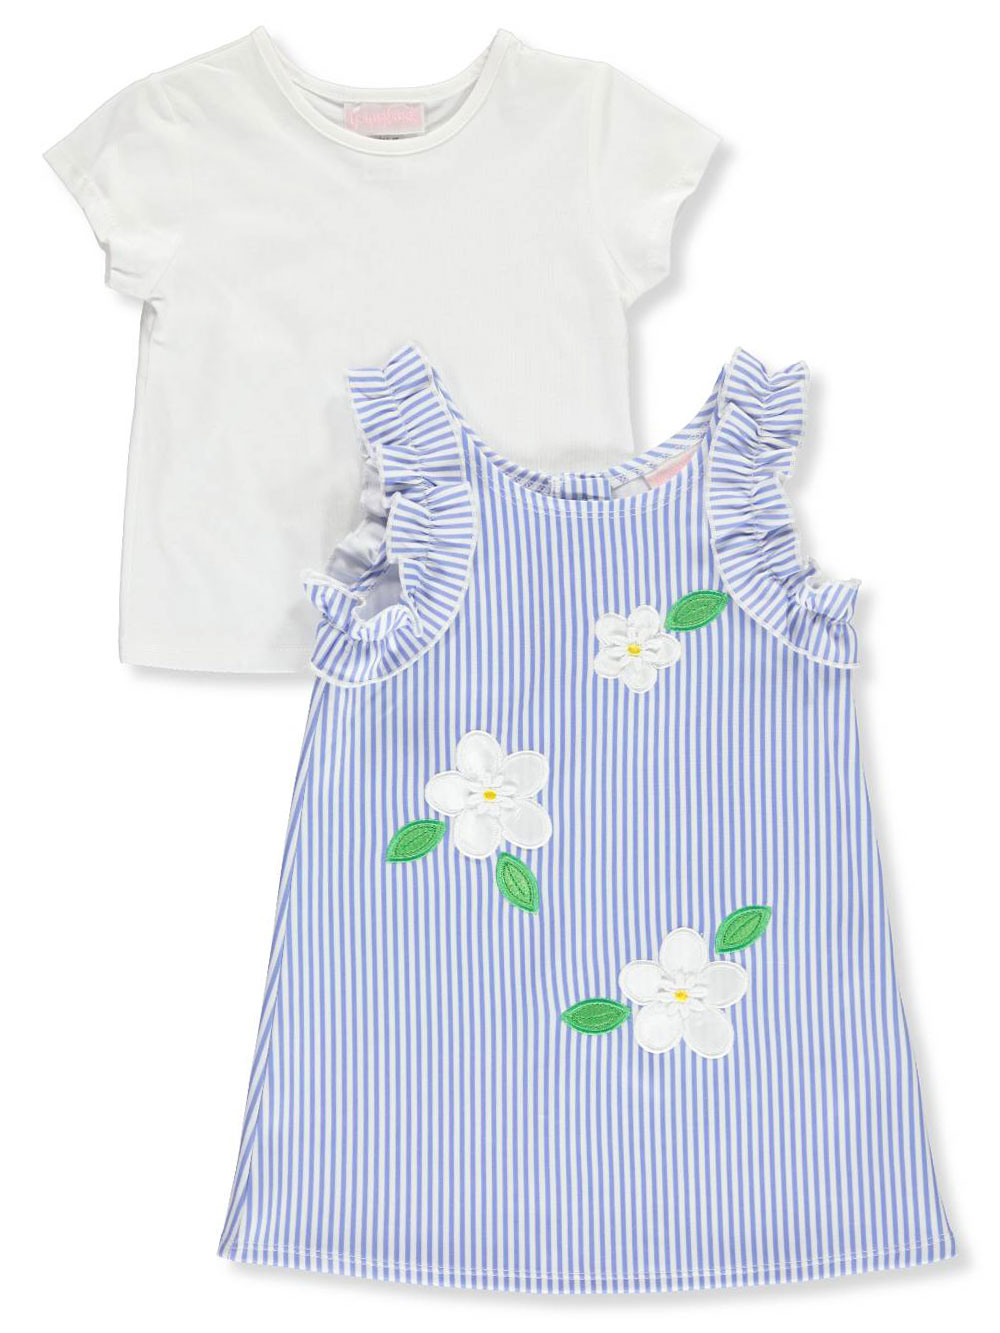 28cc0fc46 Girls' 2-Piece Dress Set Outfit by Youngland in Flower from Cookie's ...